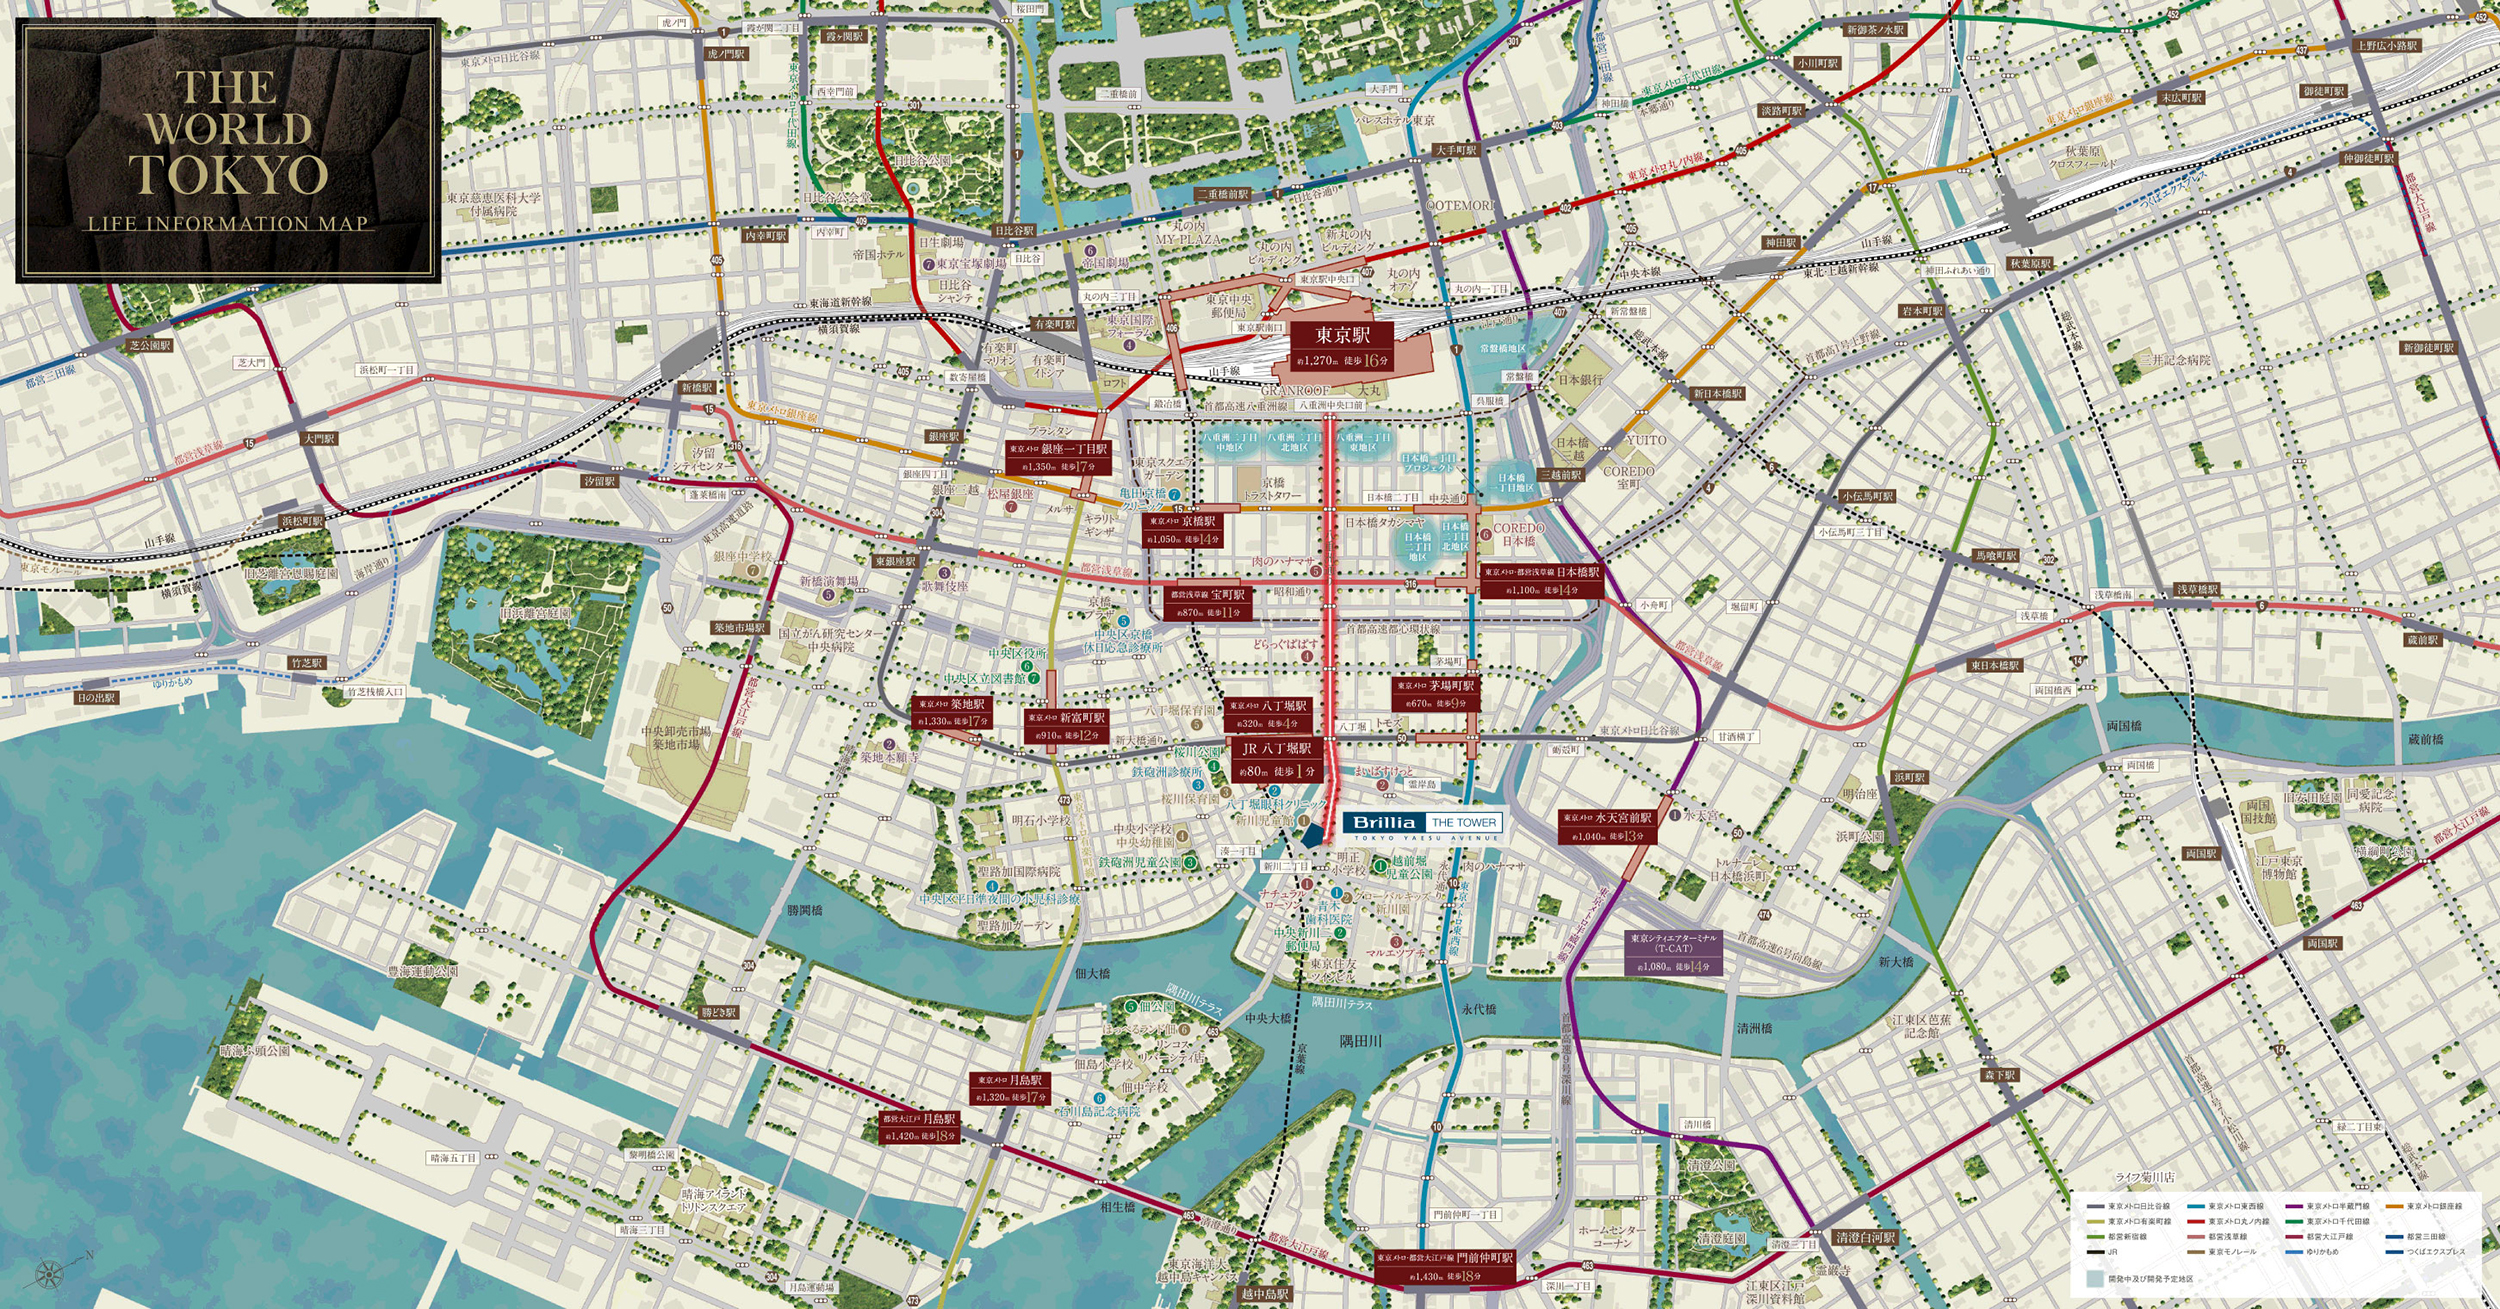 THE WORLD TOKYO LIFE INFOMATION MAP